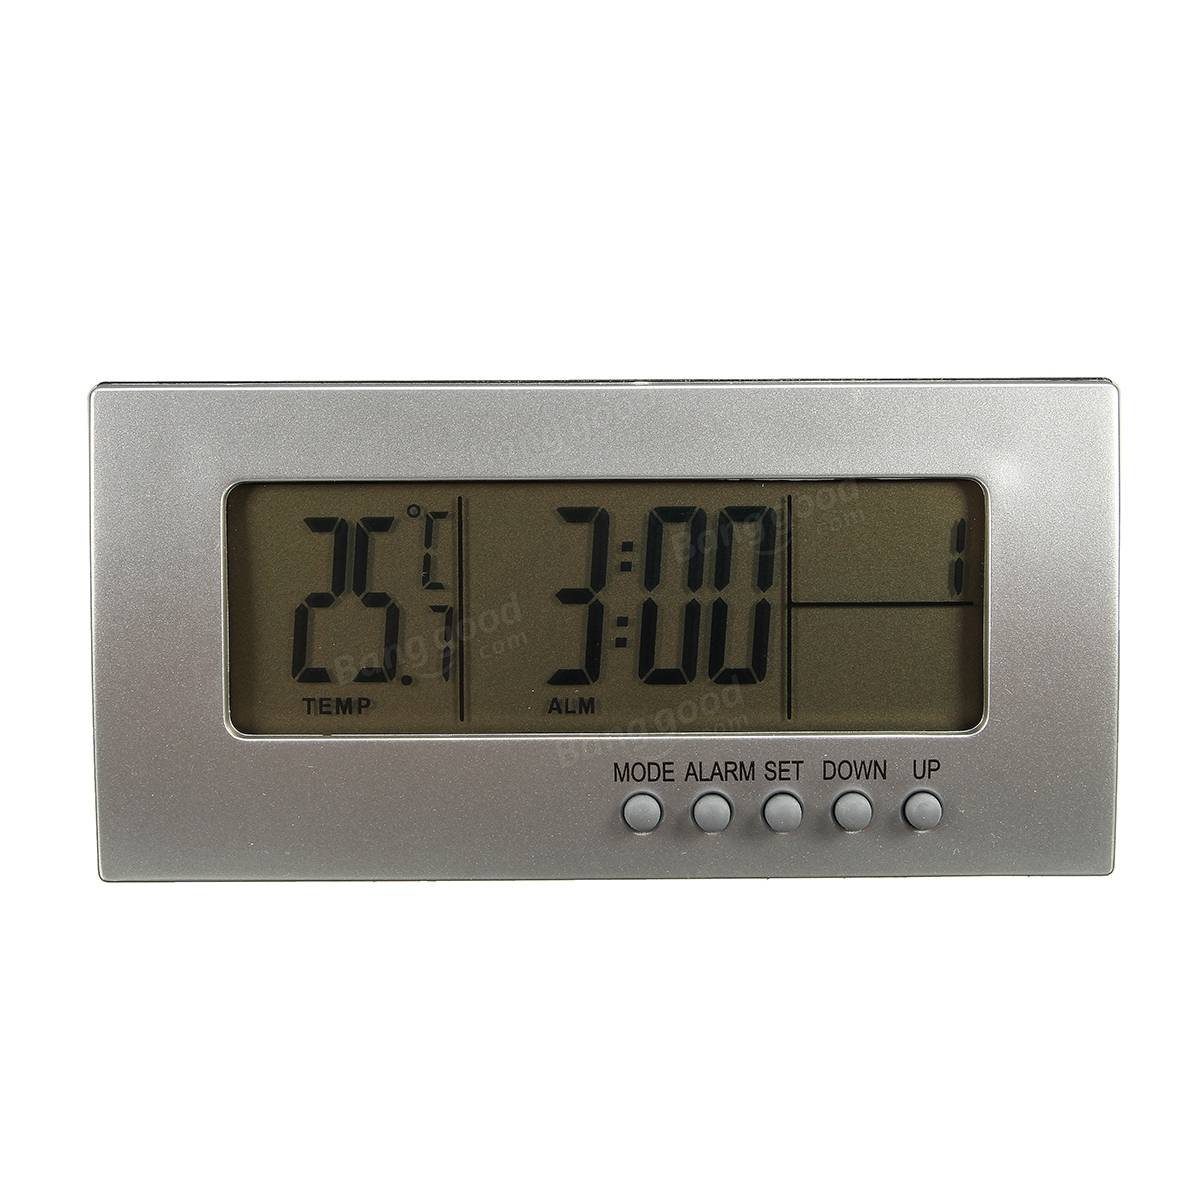 Digital Desk Clock Digital Desk Alarm Clock Snooze Date Time Calendar